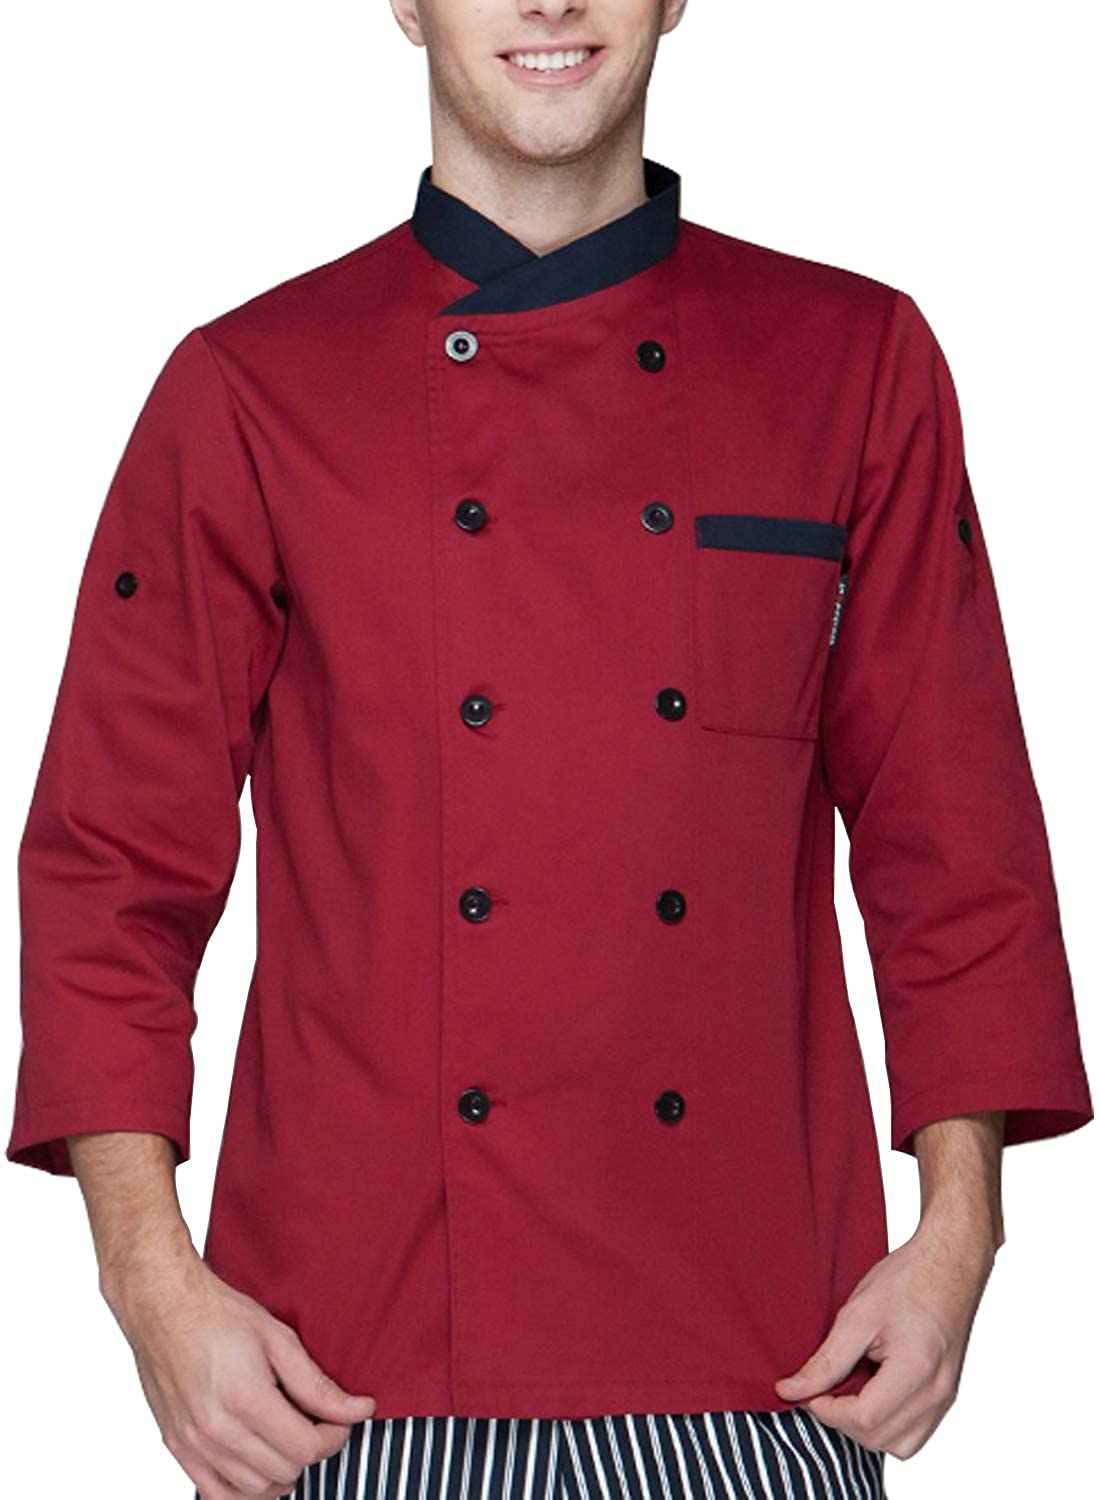 BOUPIUN Chef Coat Sleeve Adjustable Uniform Unisex Chef Jackets